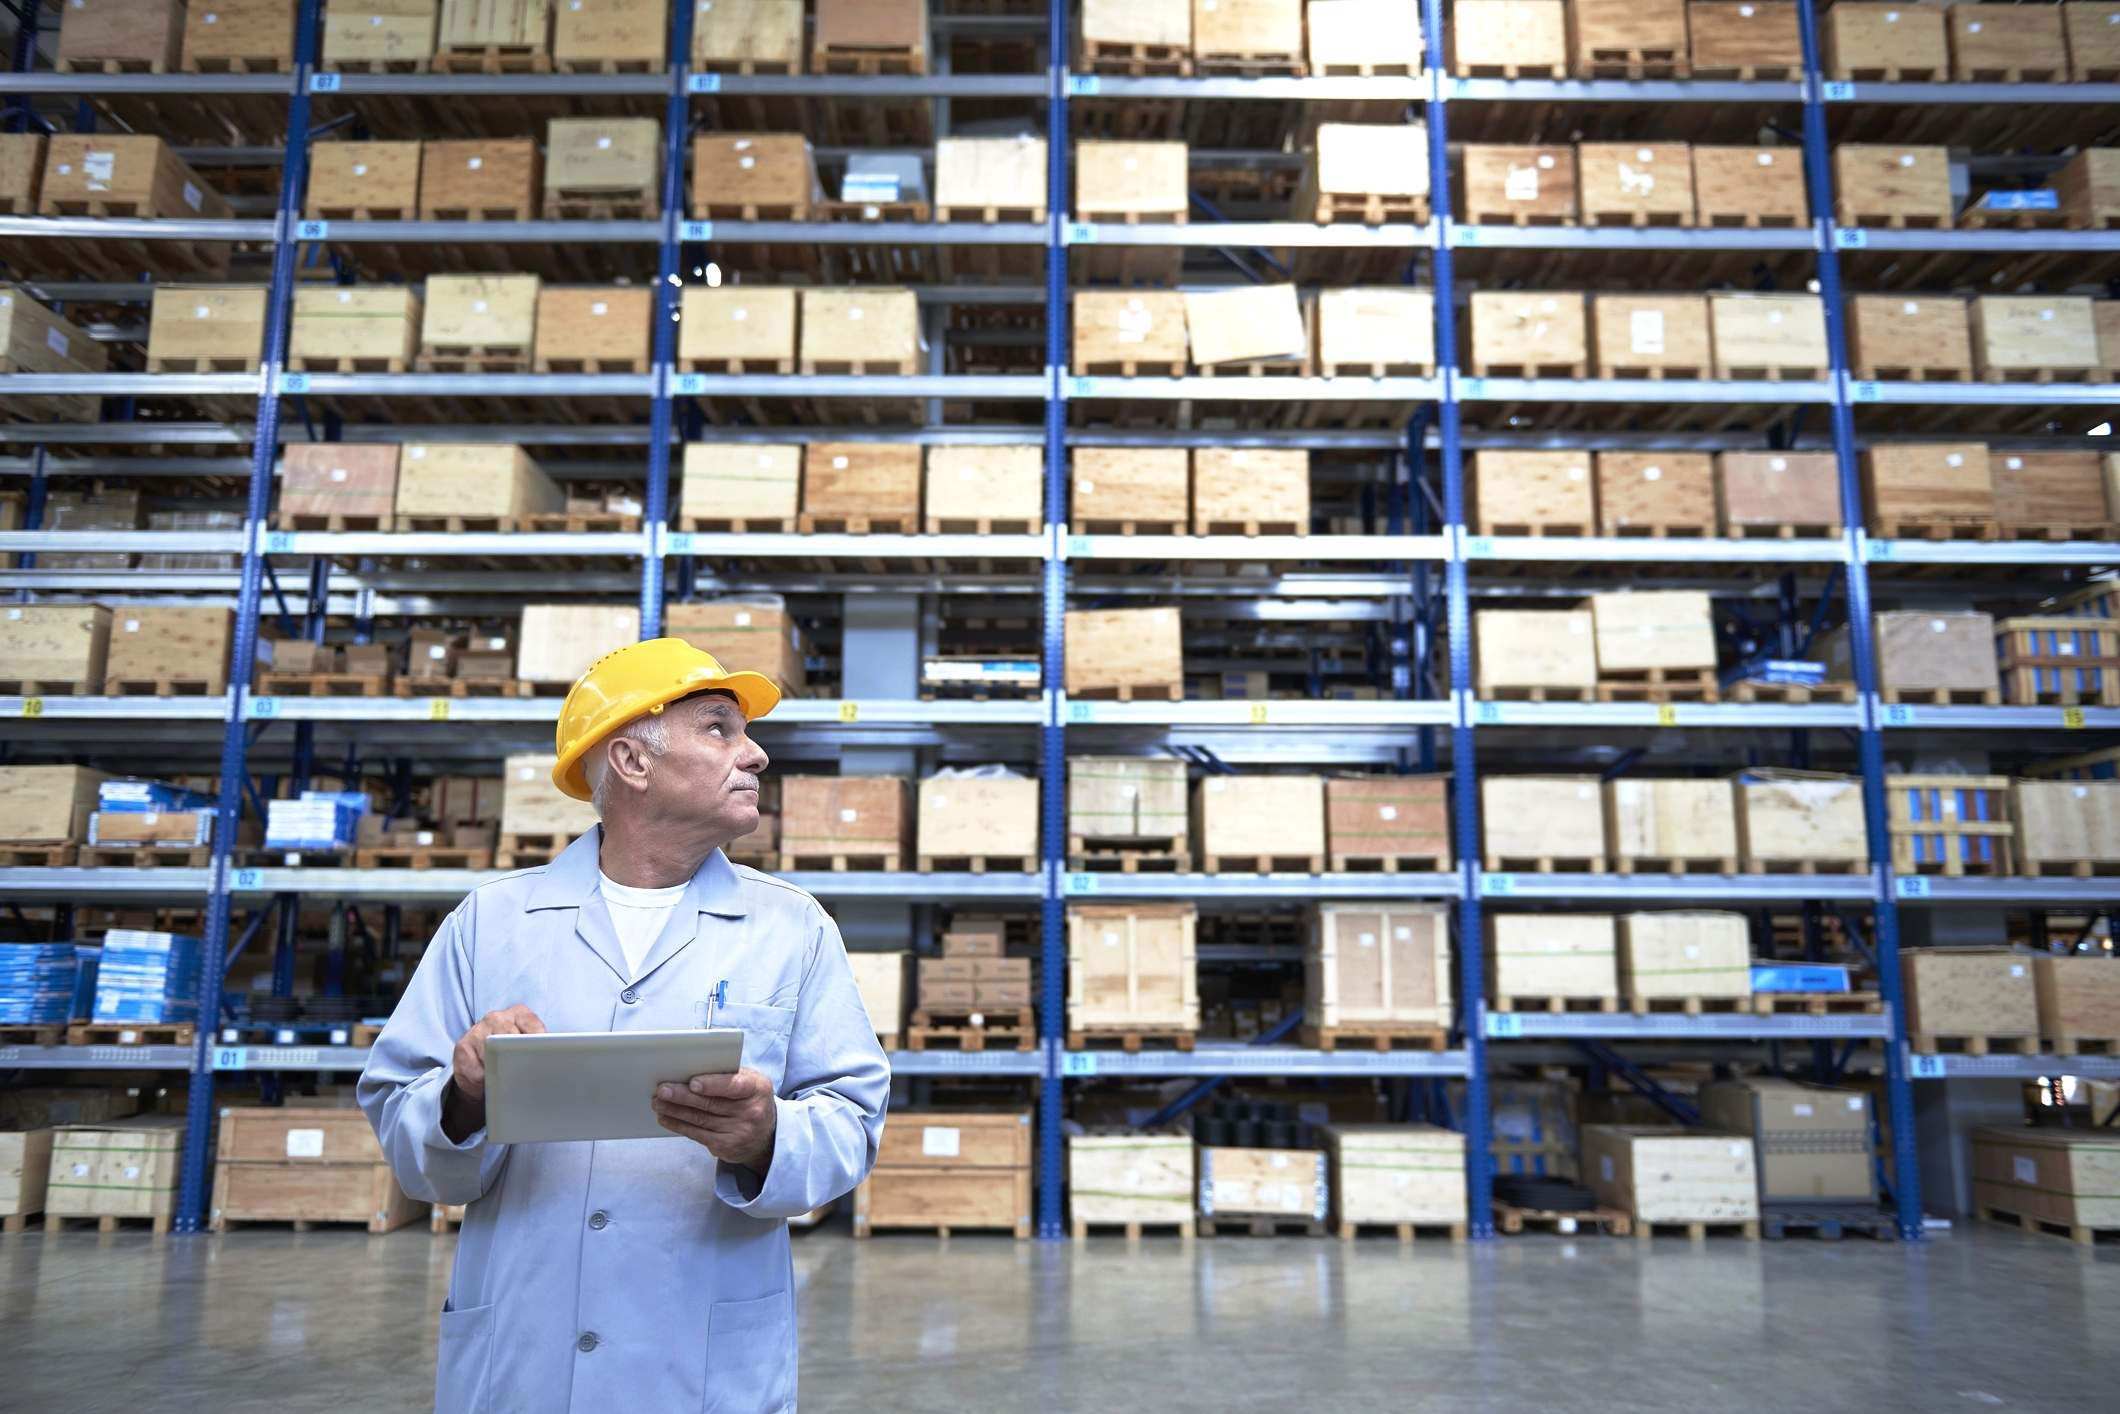 Inventory Investment Optimization - Inventory is cash, and it should be valued like cash. Ensuring your inventory investment matches the company's supply chain strategy is critical to success.